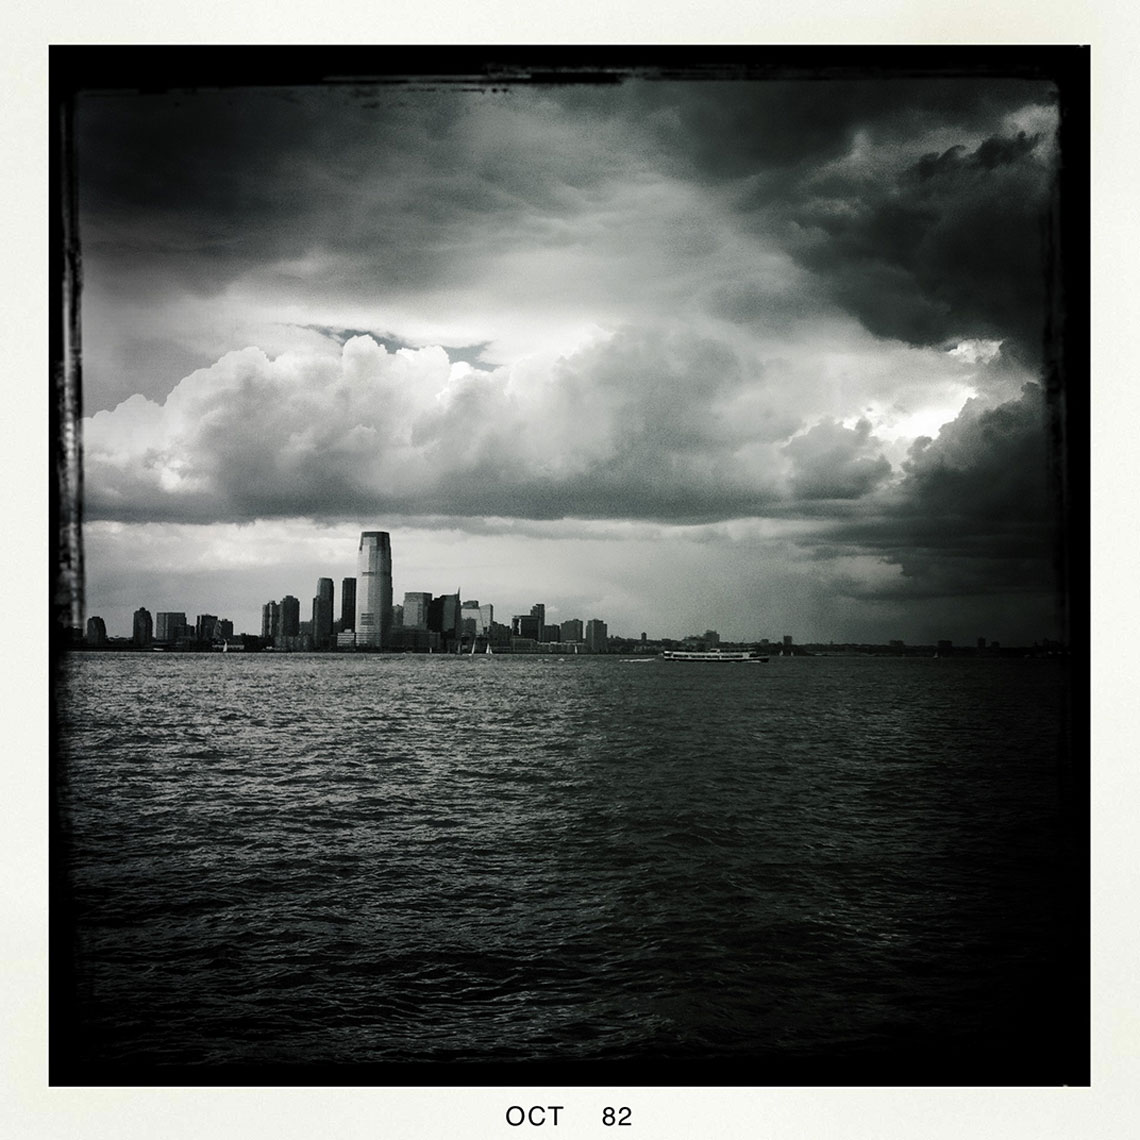 NYC Stormy Skyline